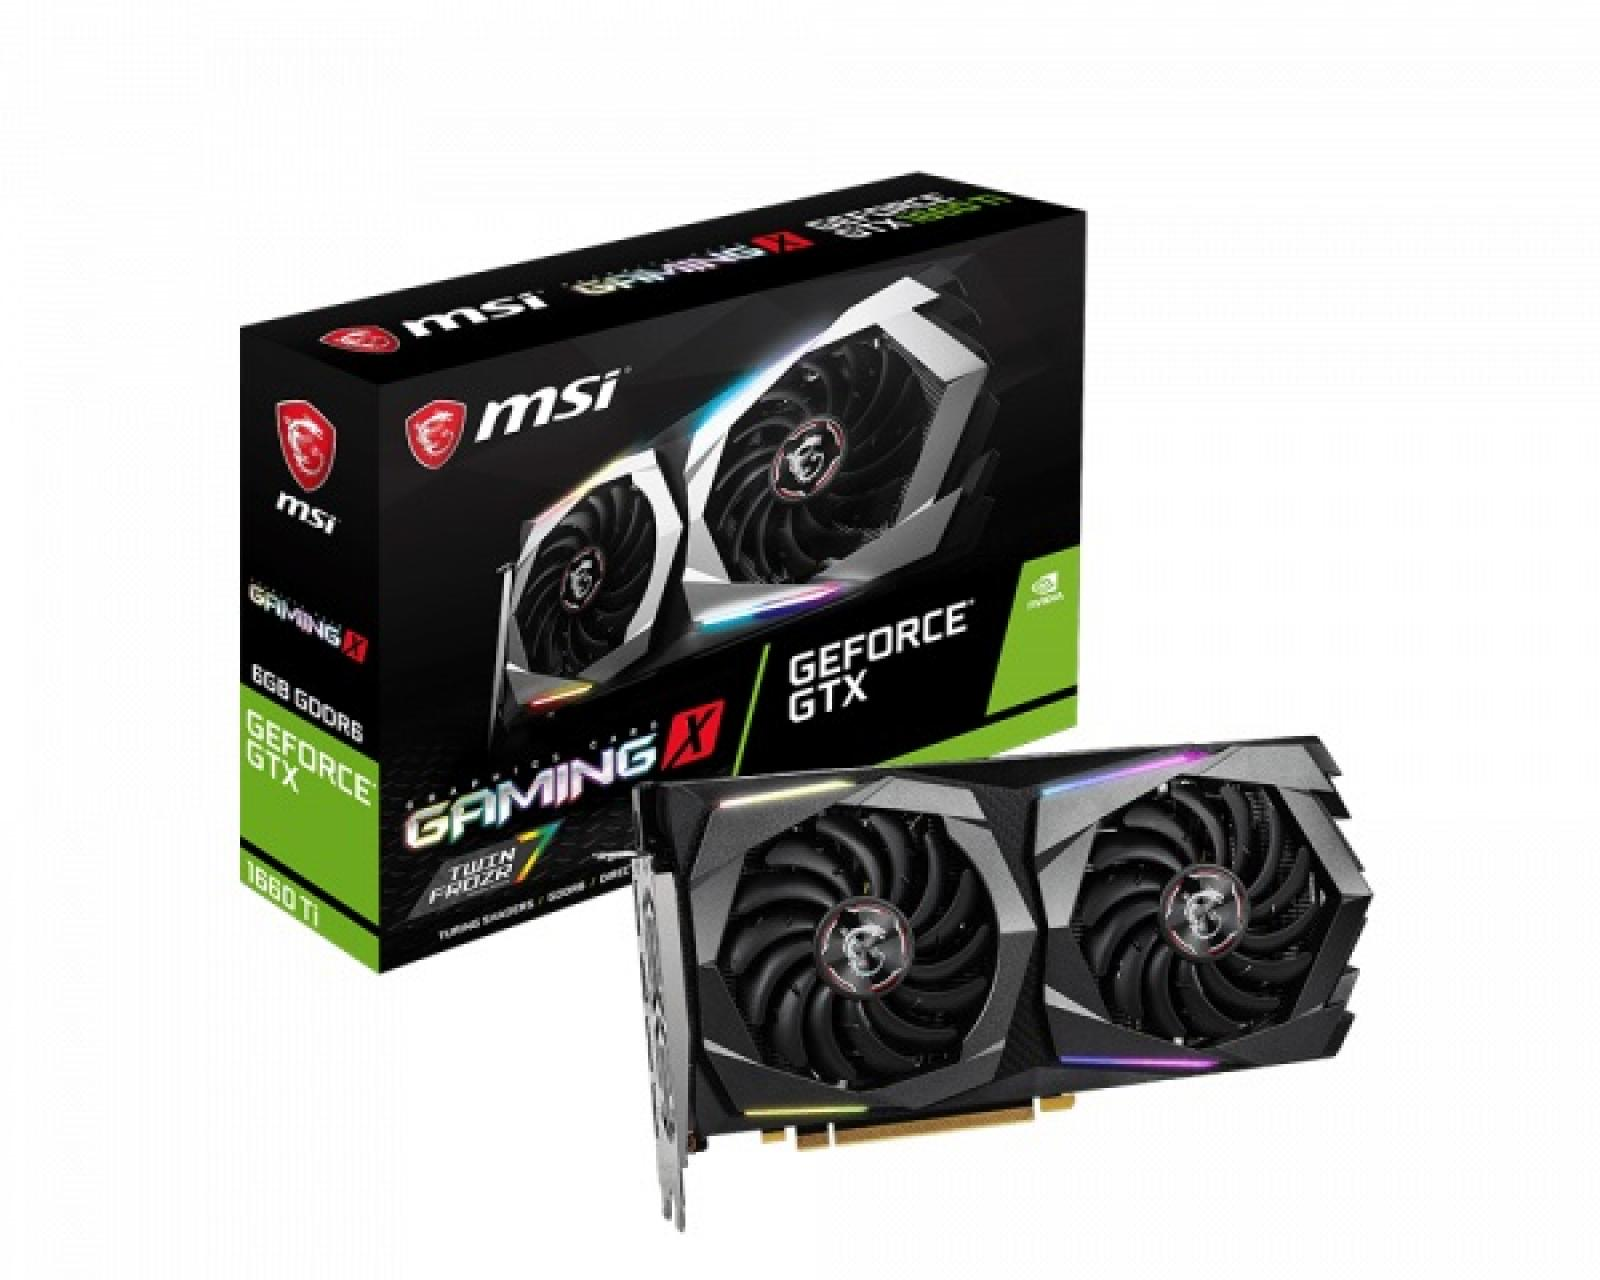 MSI GTX 1660 Ti Gaming X 6GB DDR6 192 Bit